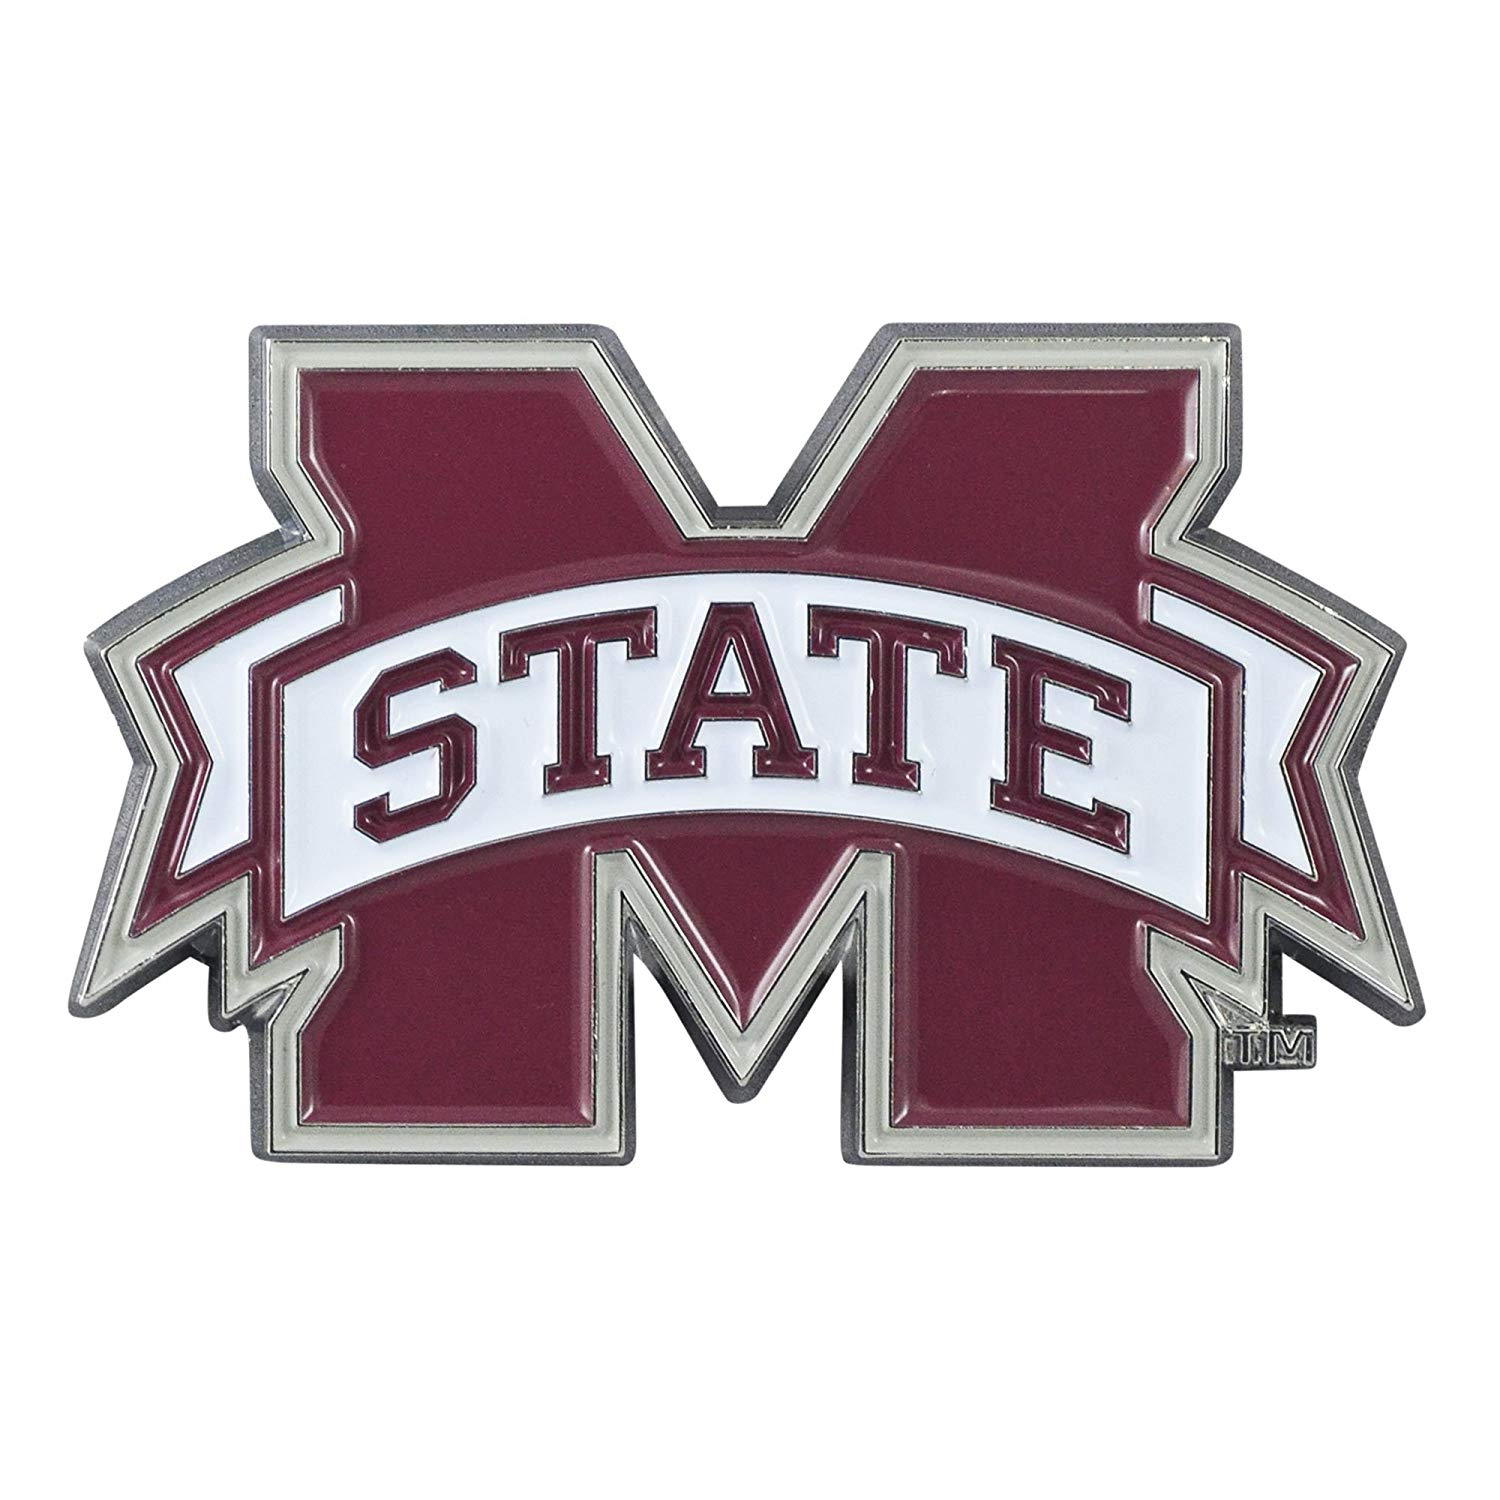 Amazon.com: Enterprises Mississippi State University.